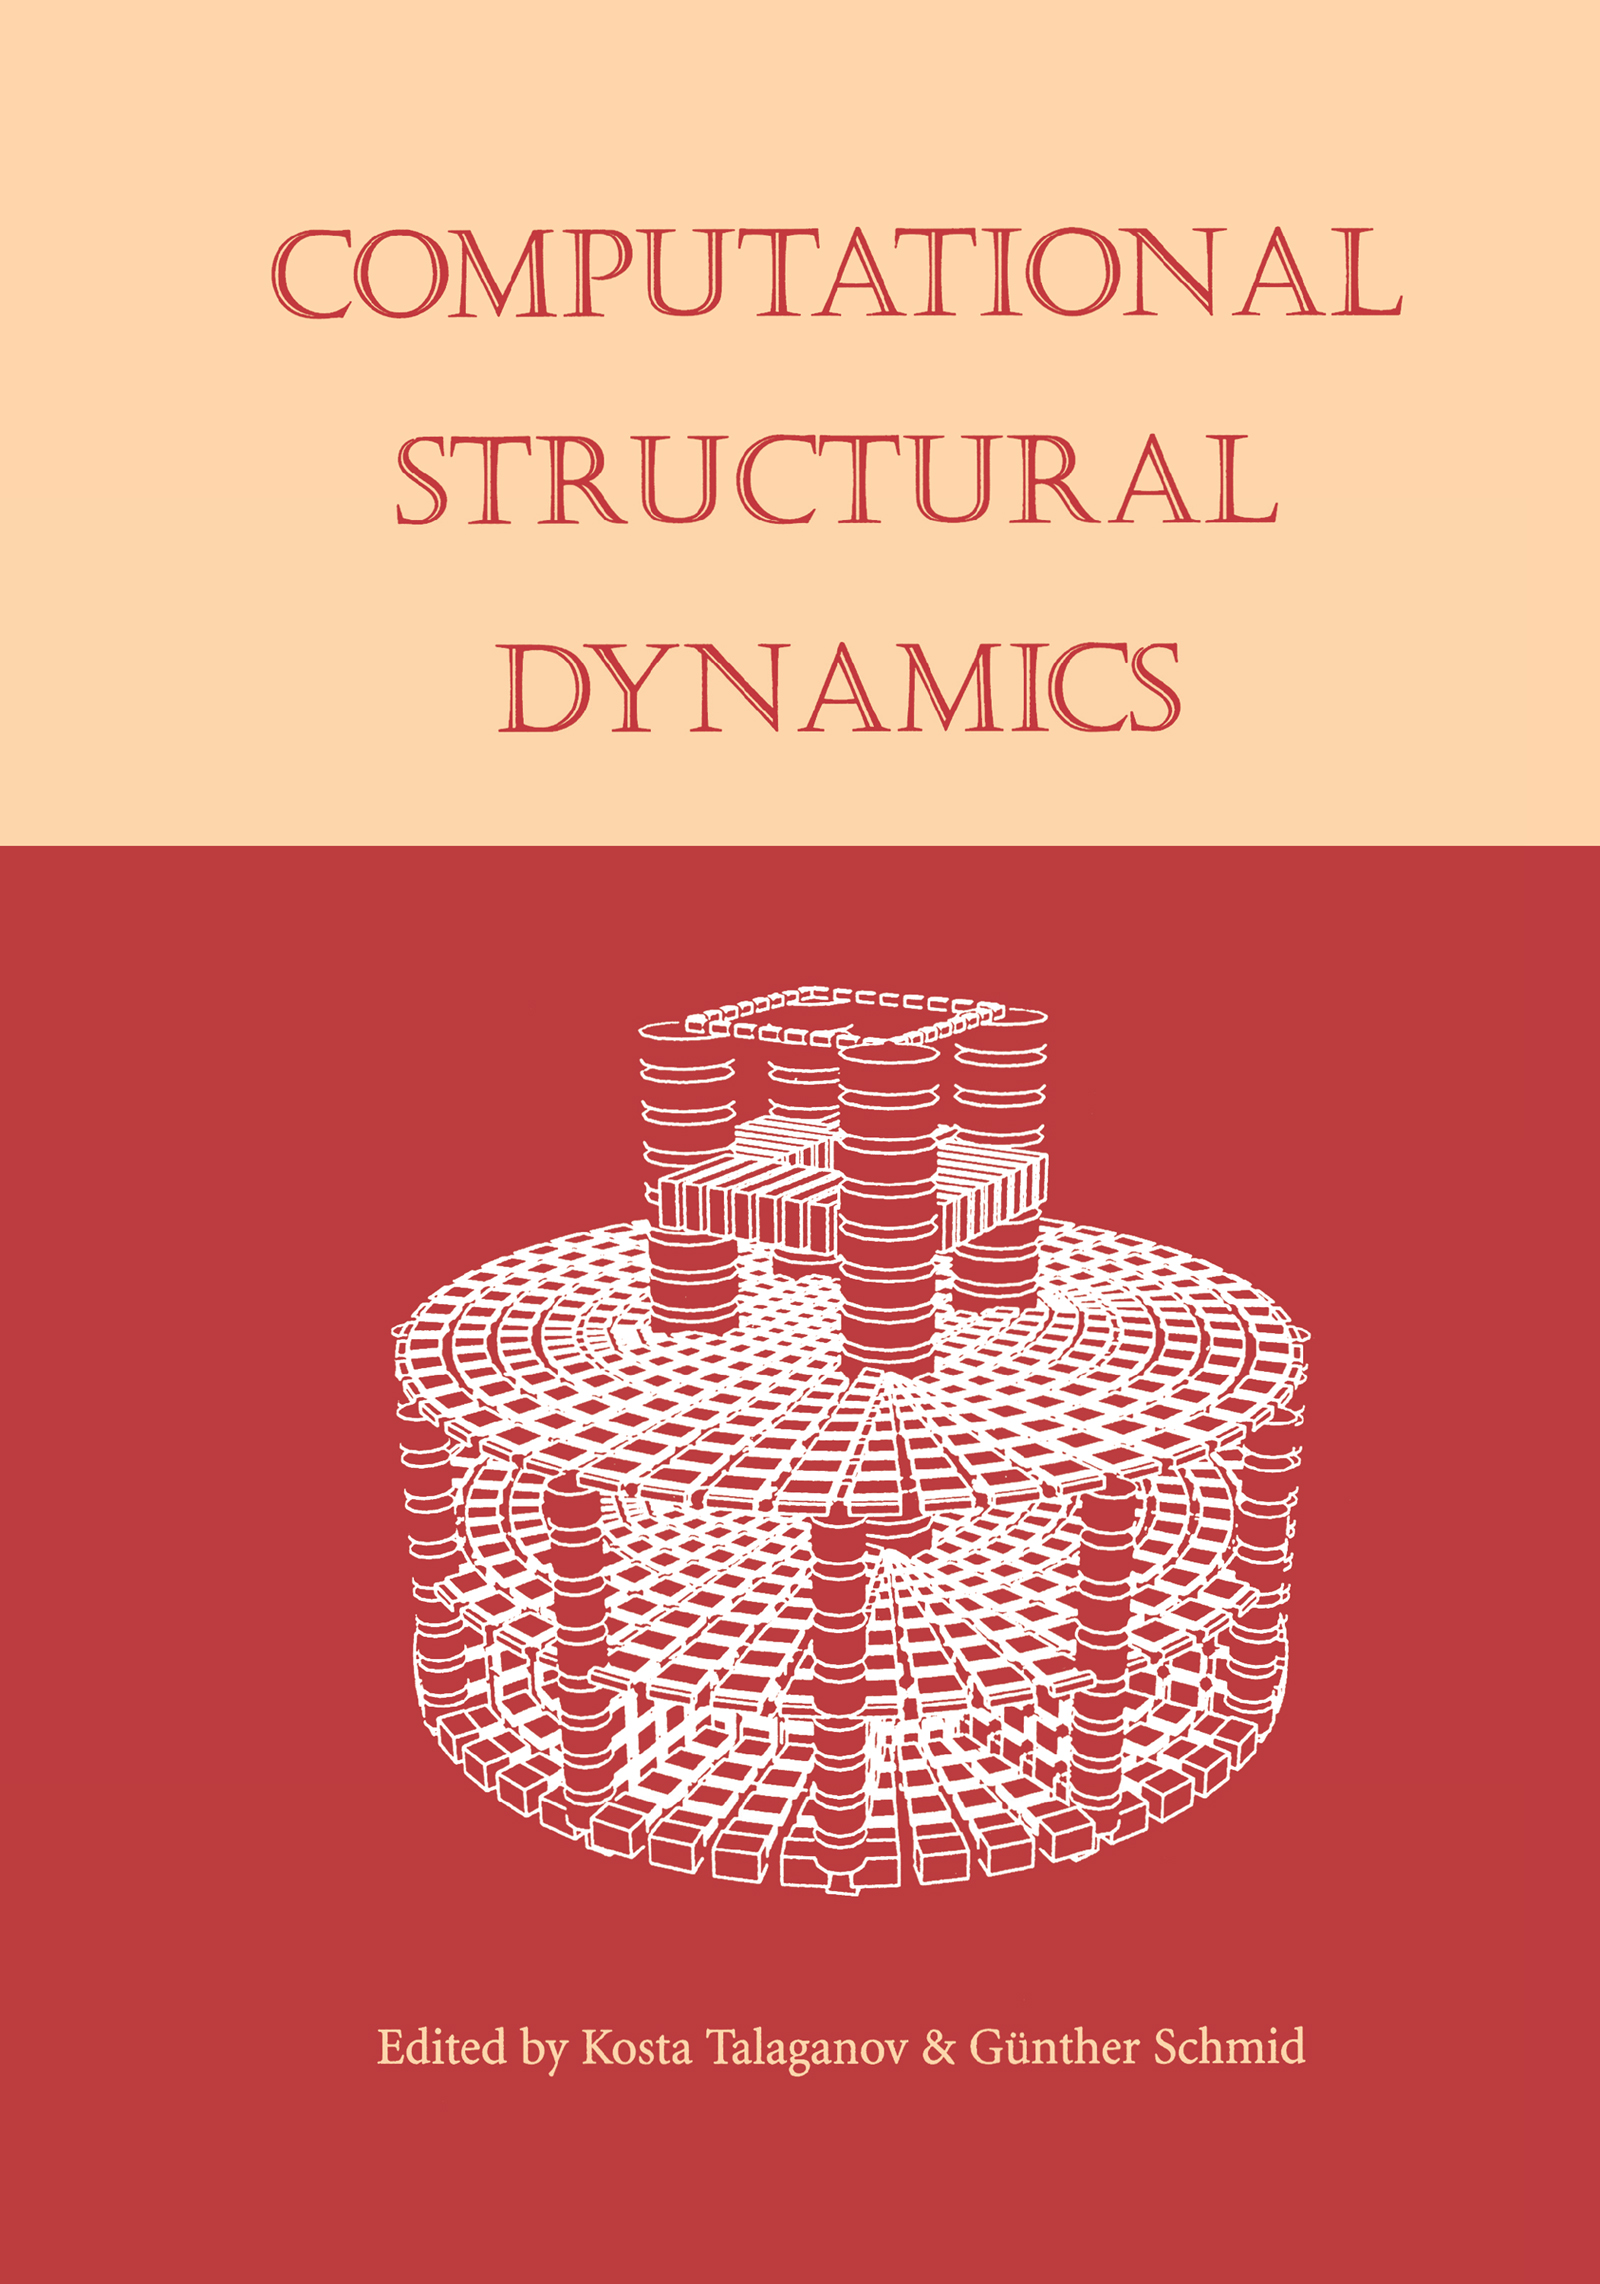 Computational Structural Dynamics